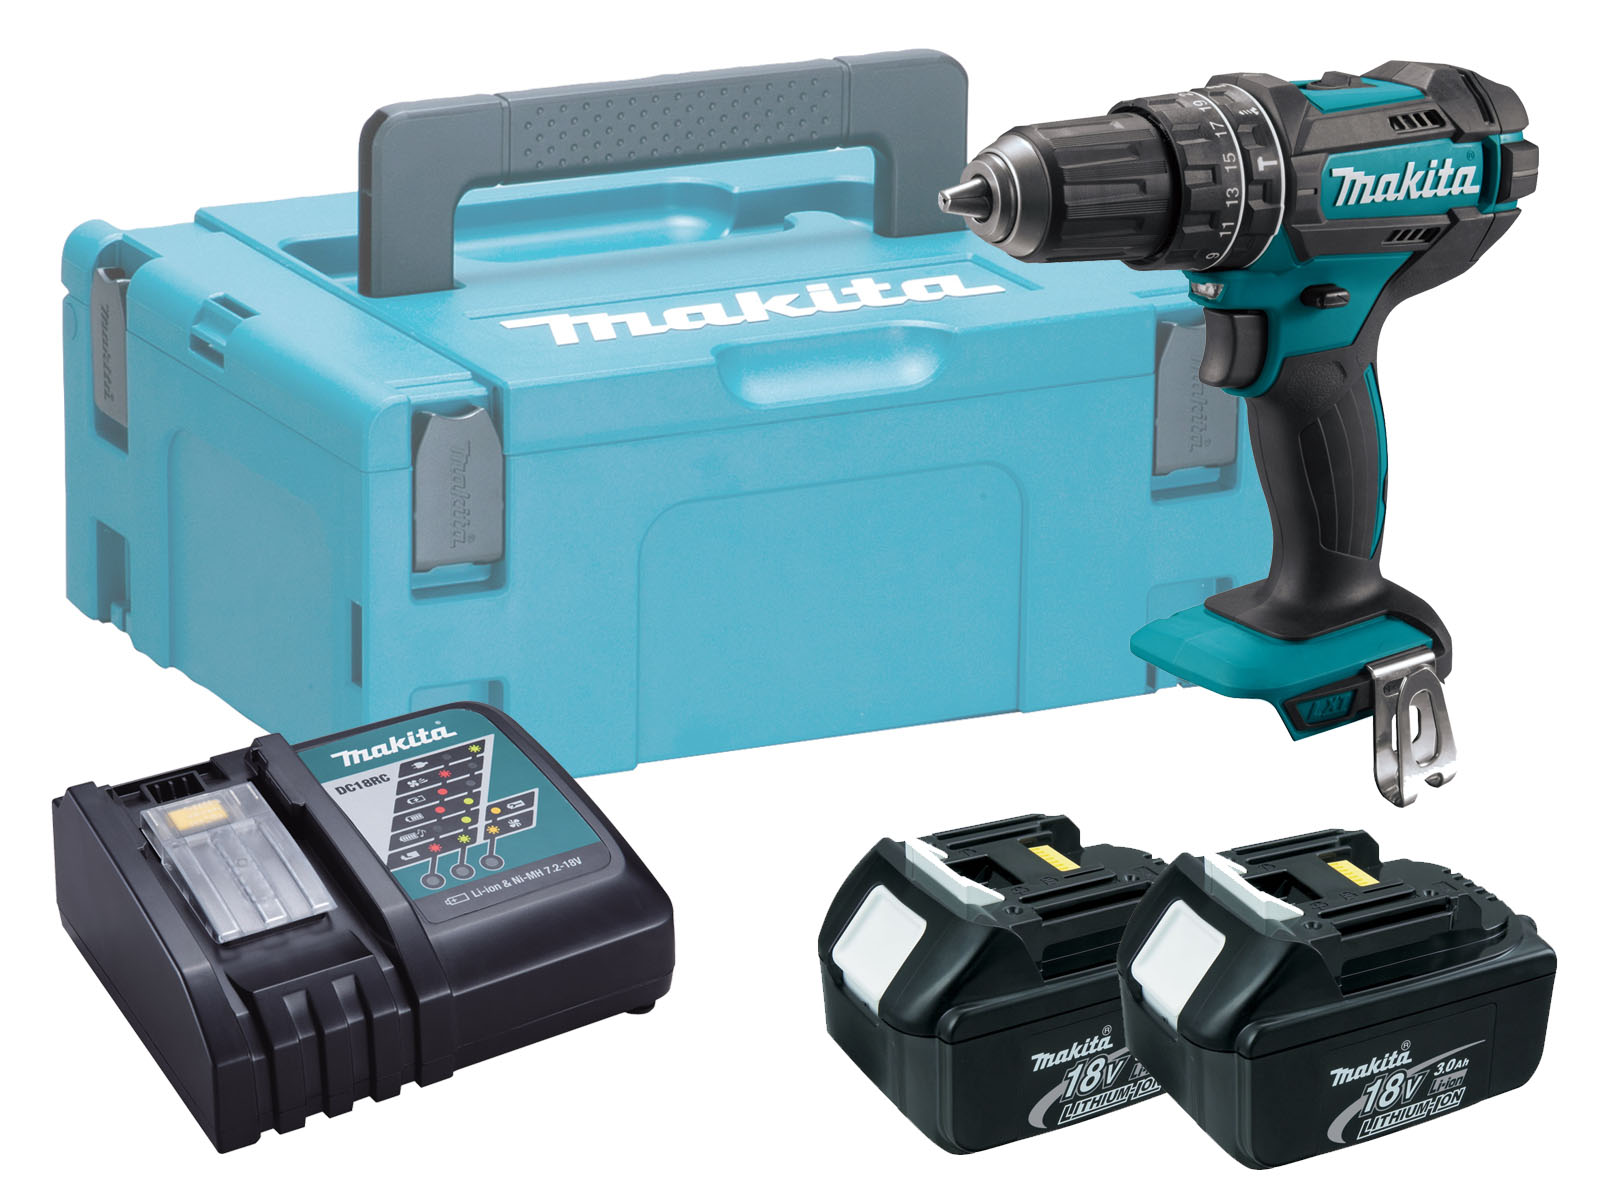 Makita DHP482 18V Combi Hammer Driver Drill Brushed - 3.0Ah Pack